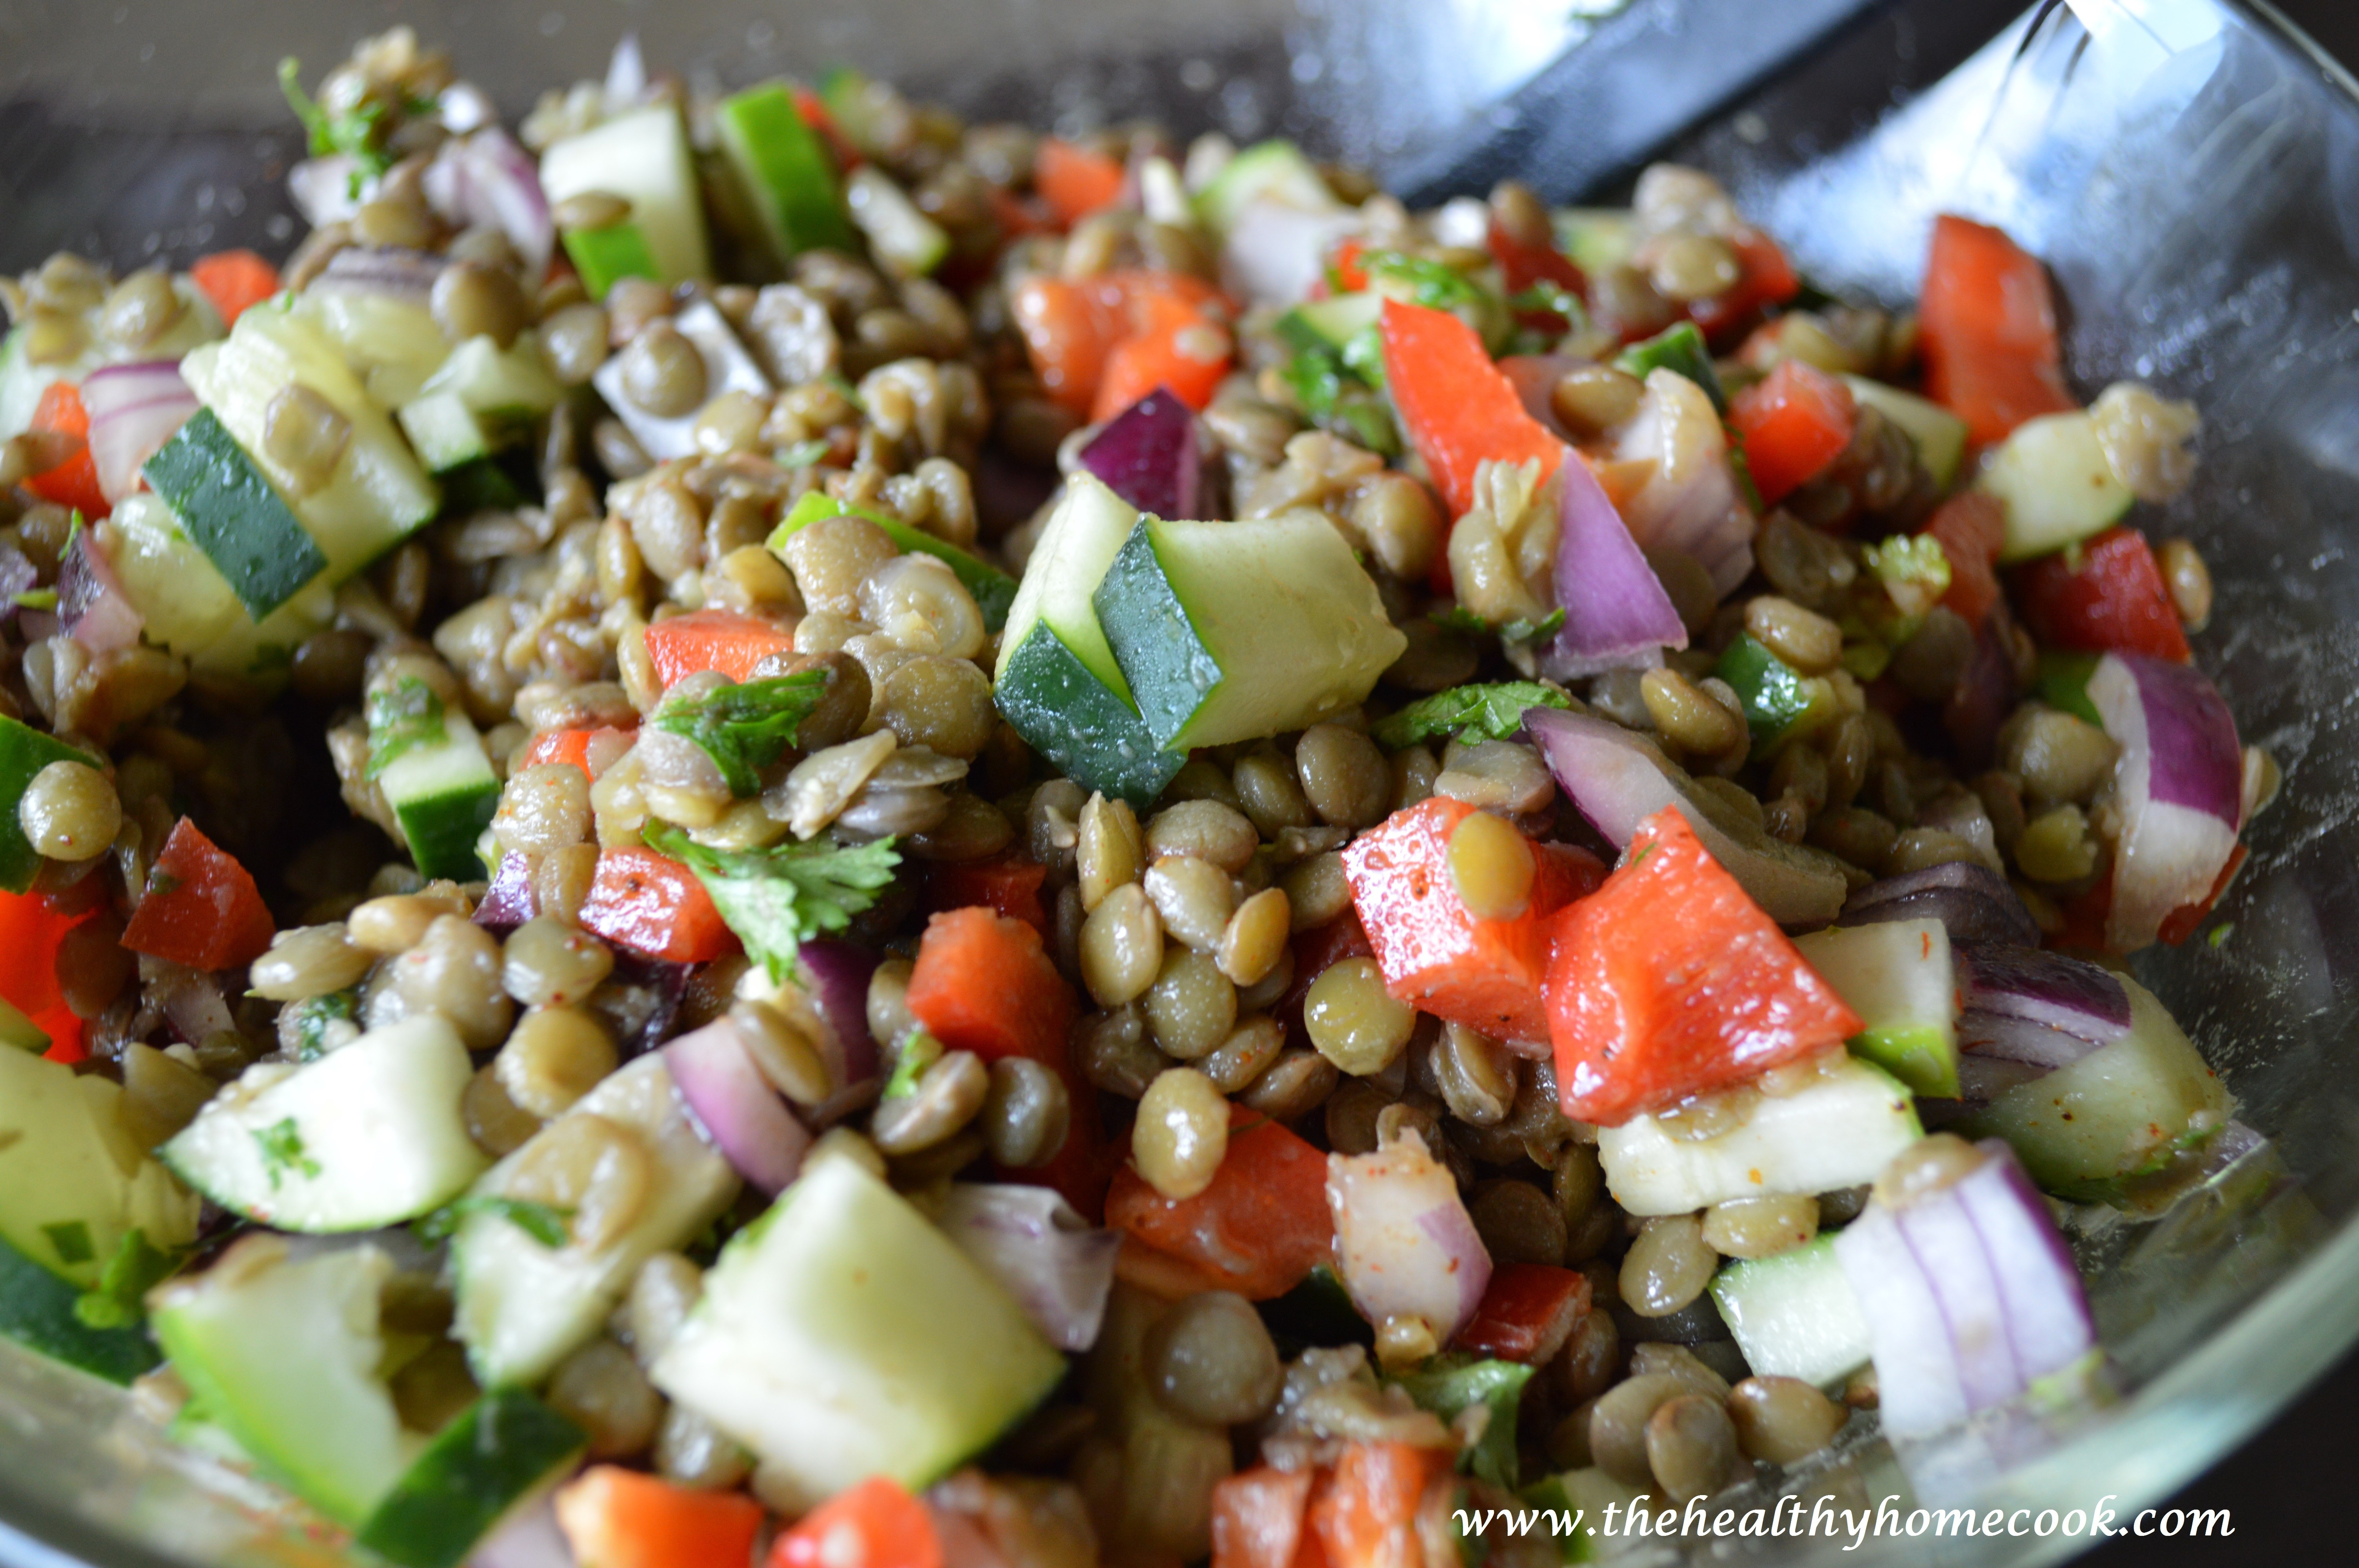 Healthy Cold Salads  Cold Lentil Salad – The Healthy Home Cook